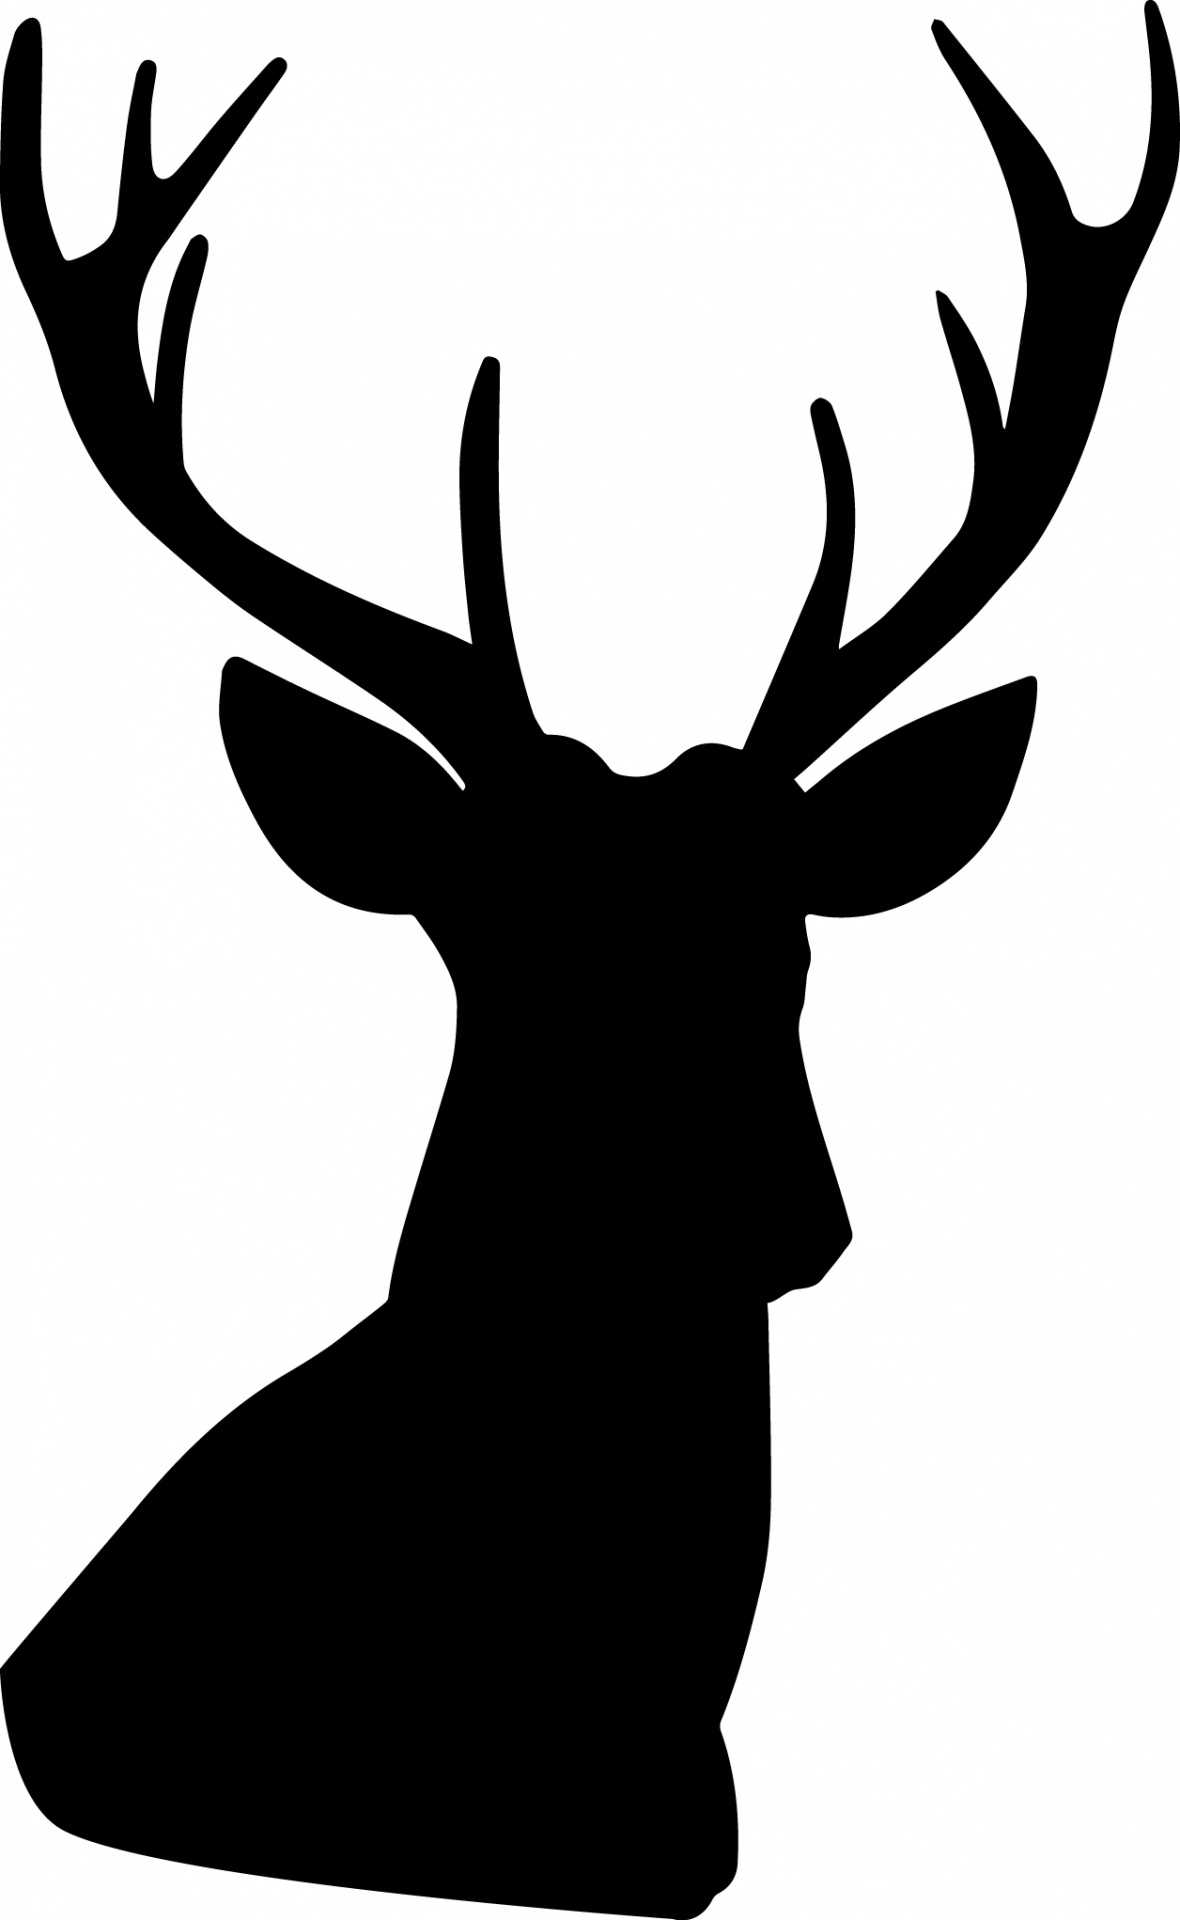 1180x1920 Deer Silhouette Free Stock Photo